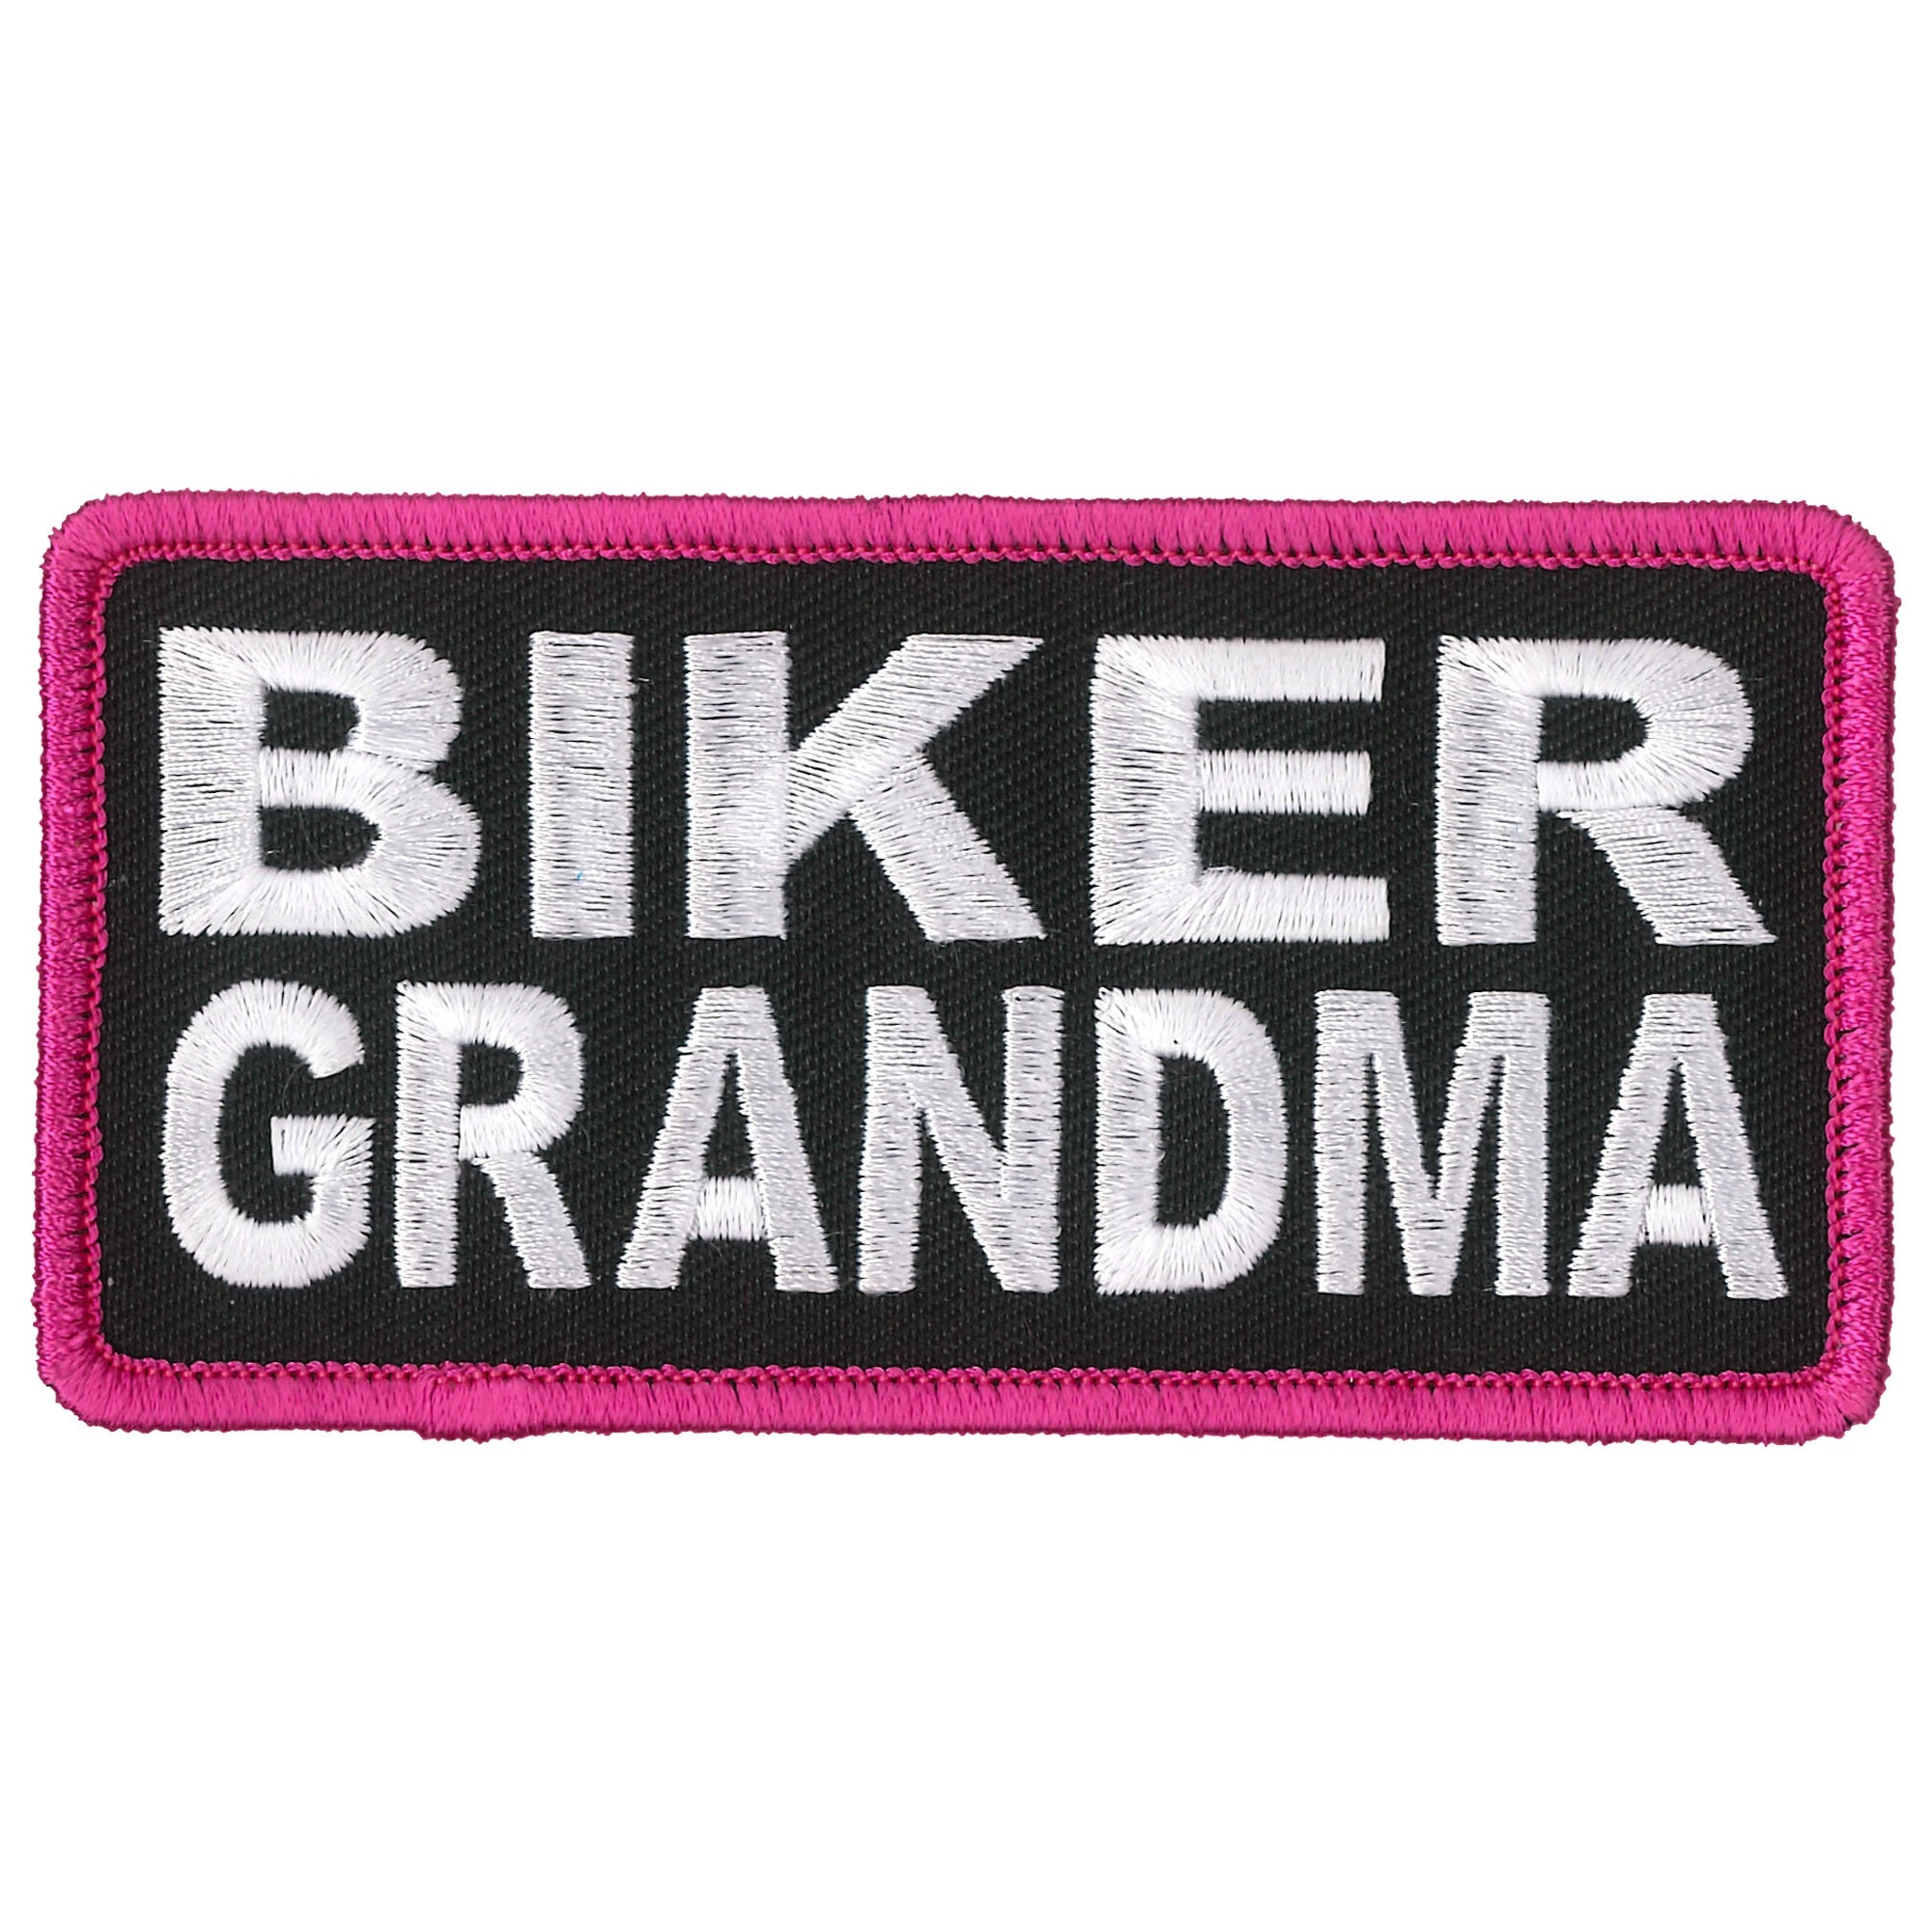 Hot Leathers Patch Biker Grandma